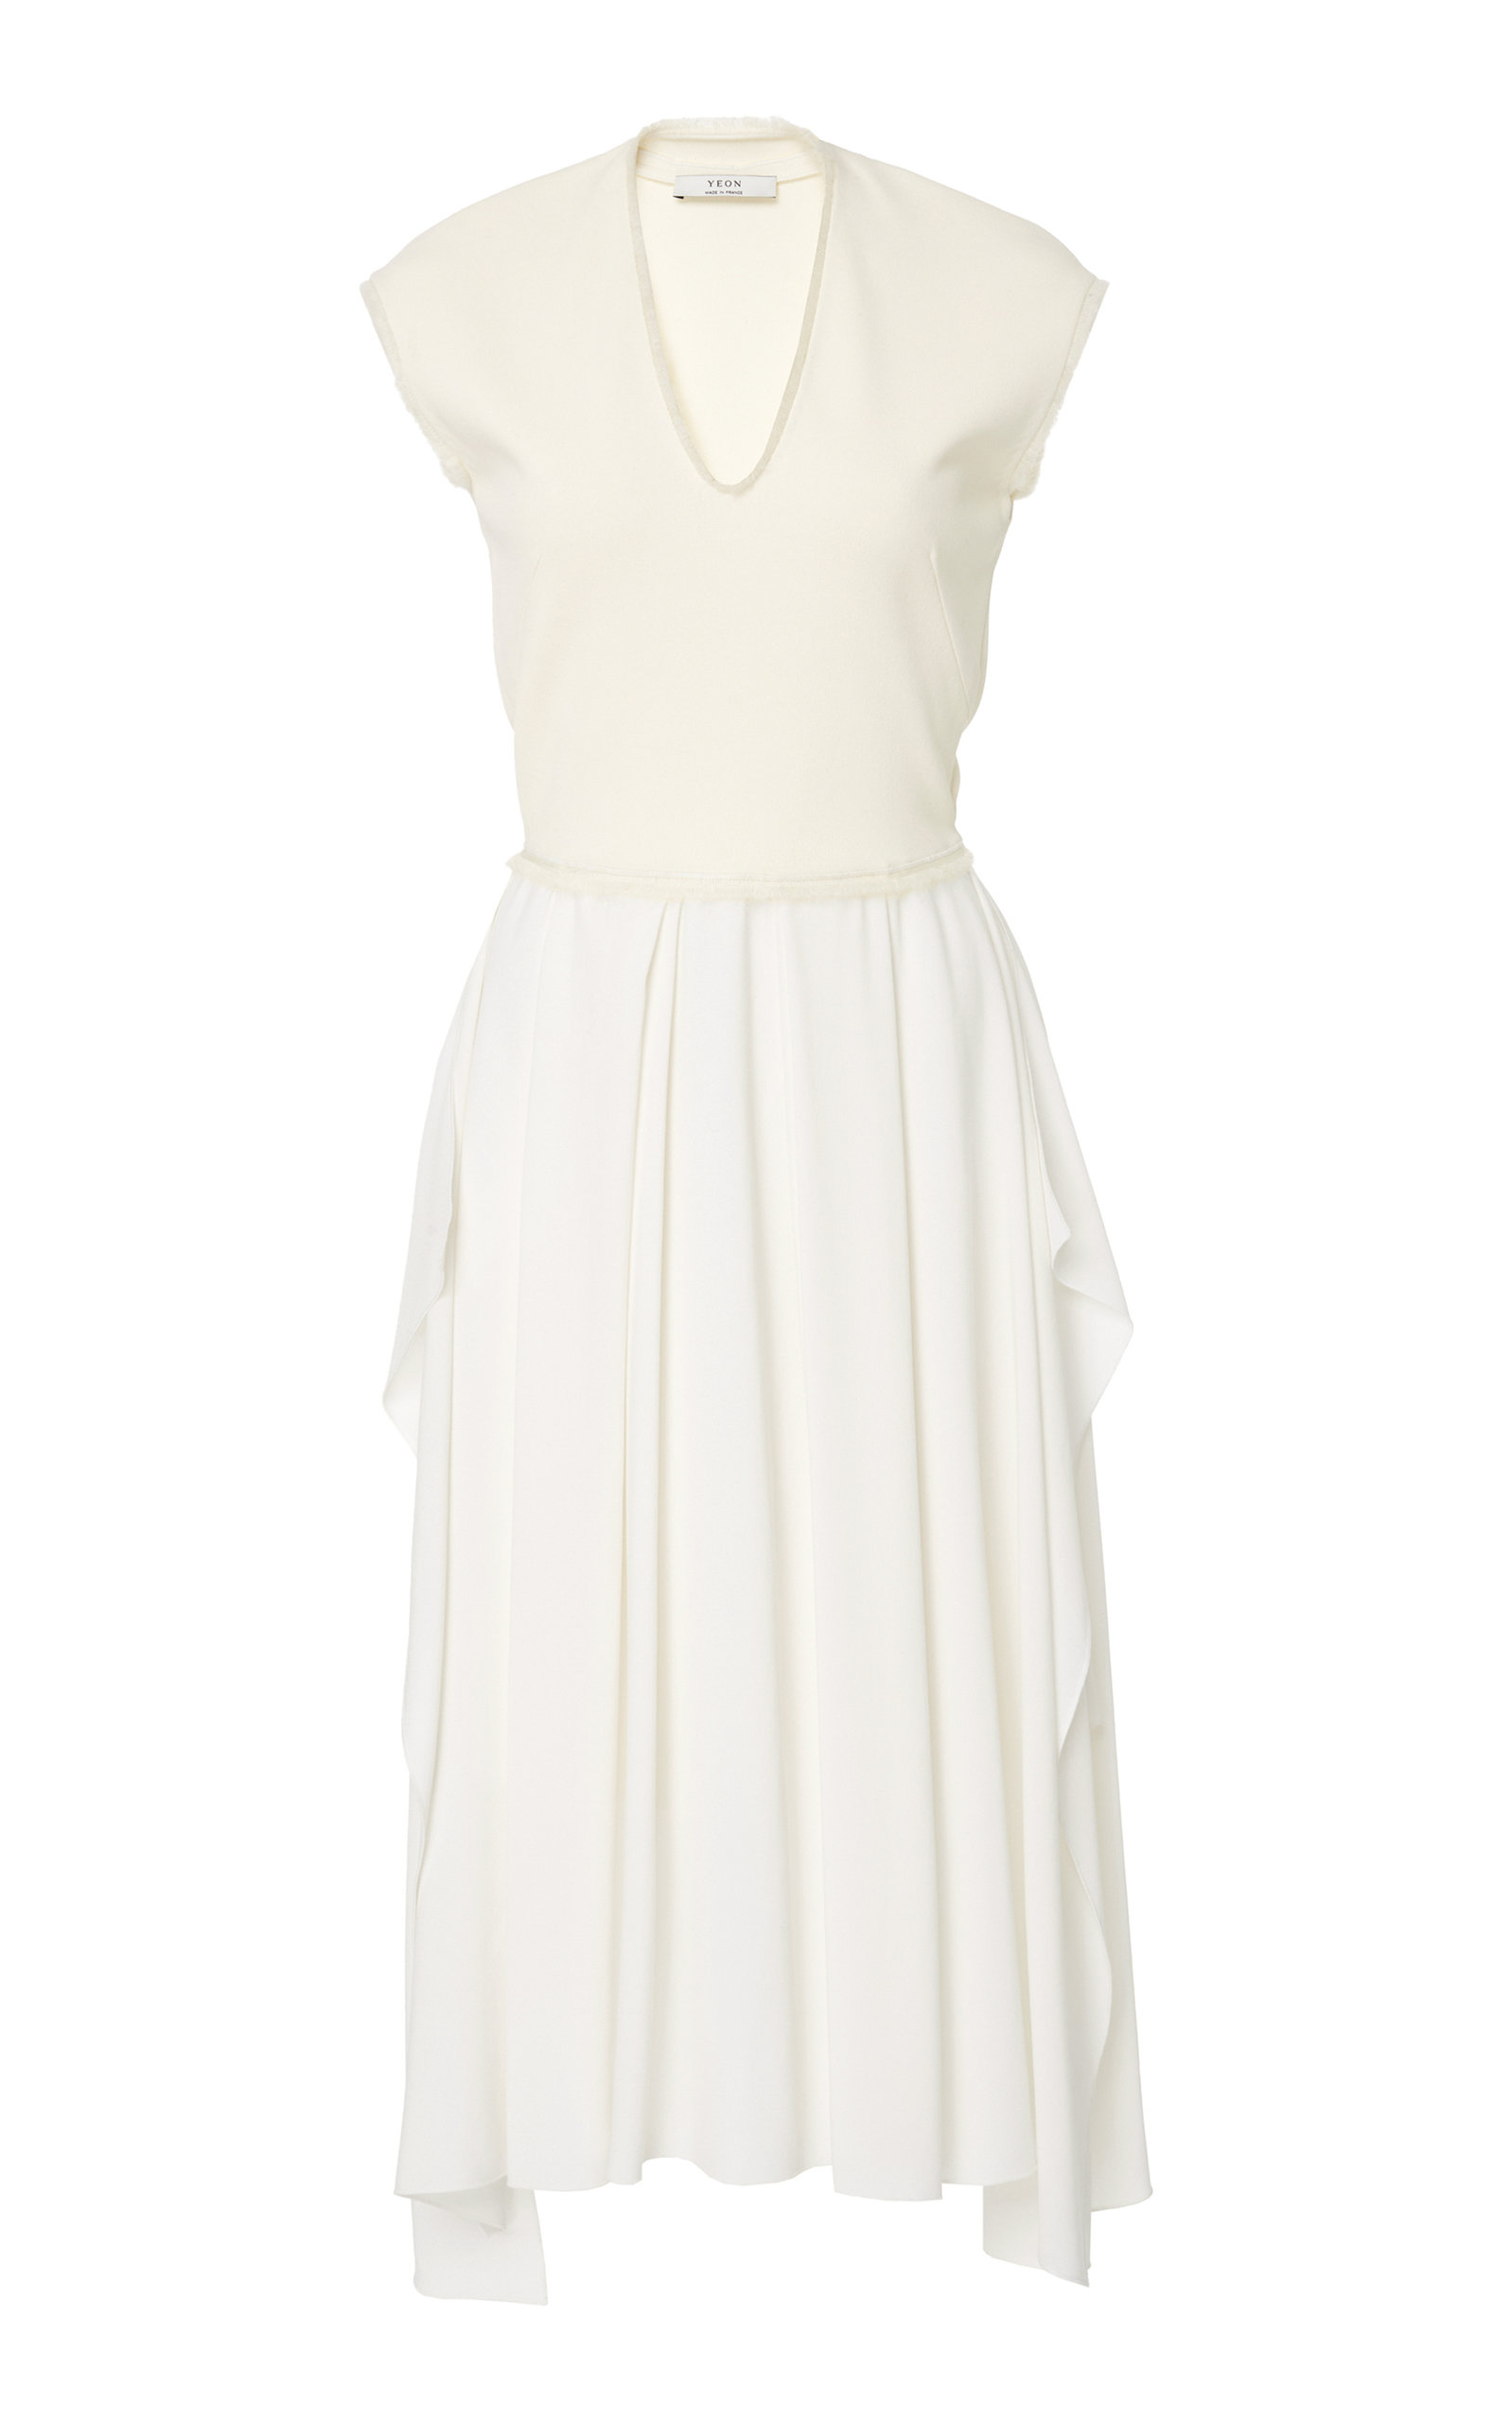 YEON M'O Exclusive Gaia Pleated Crepe Midi Dress in White